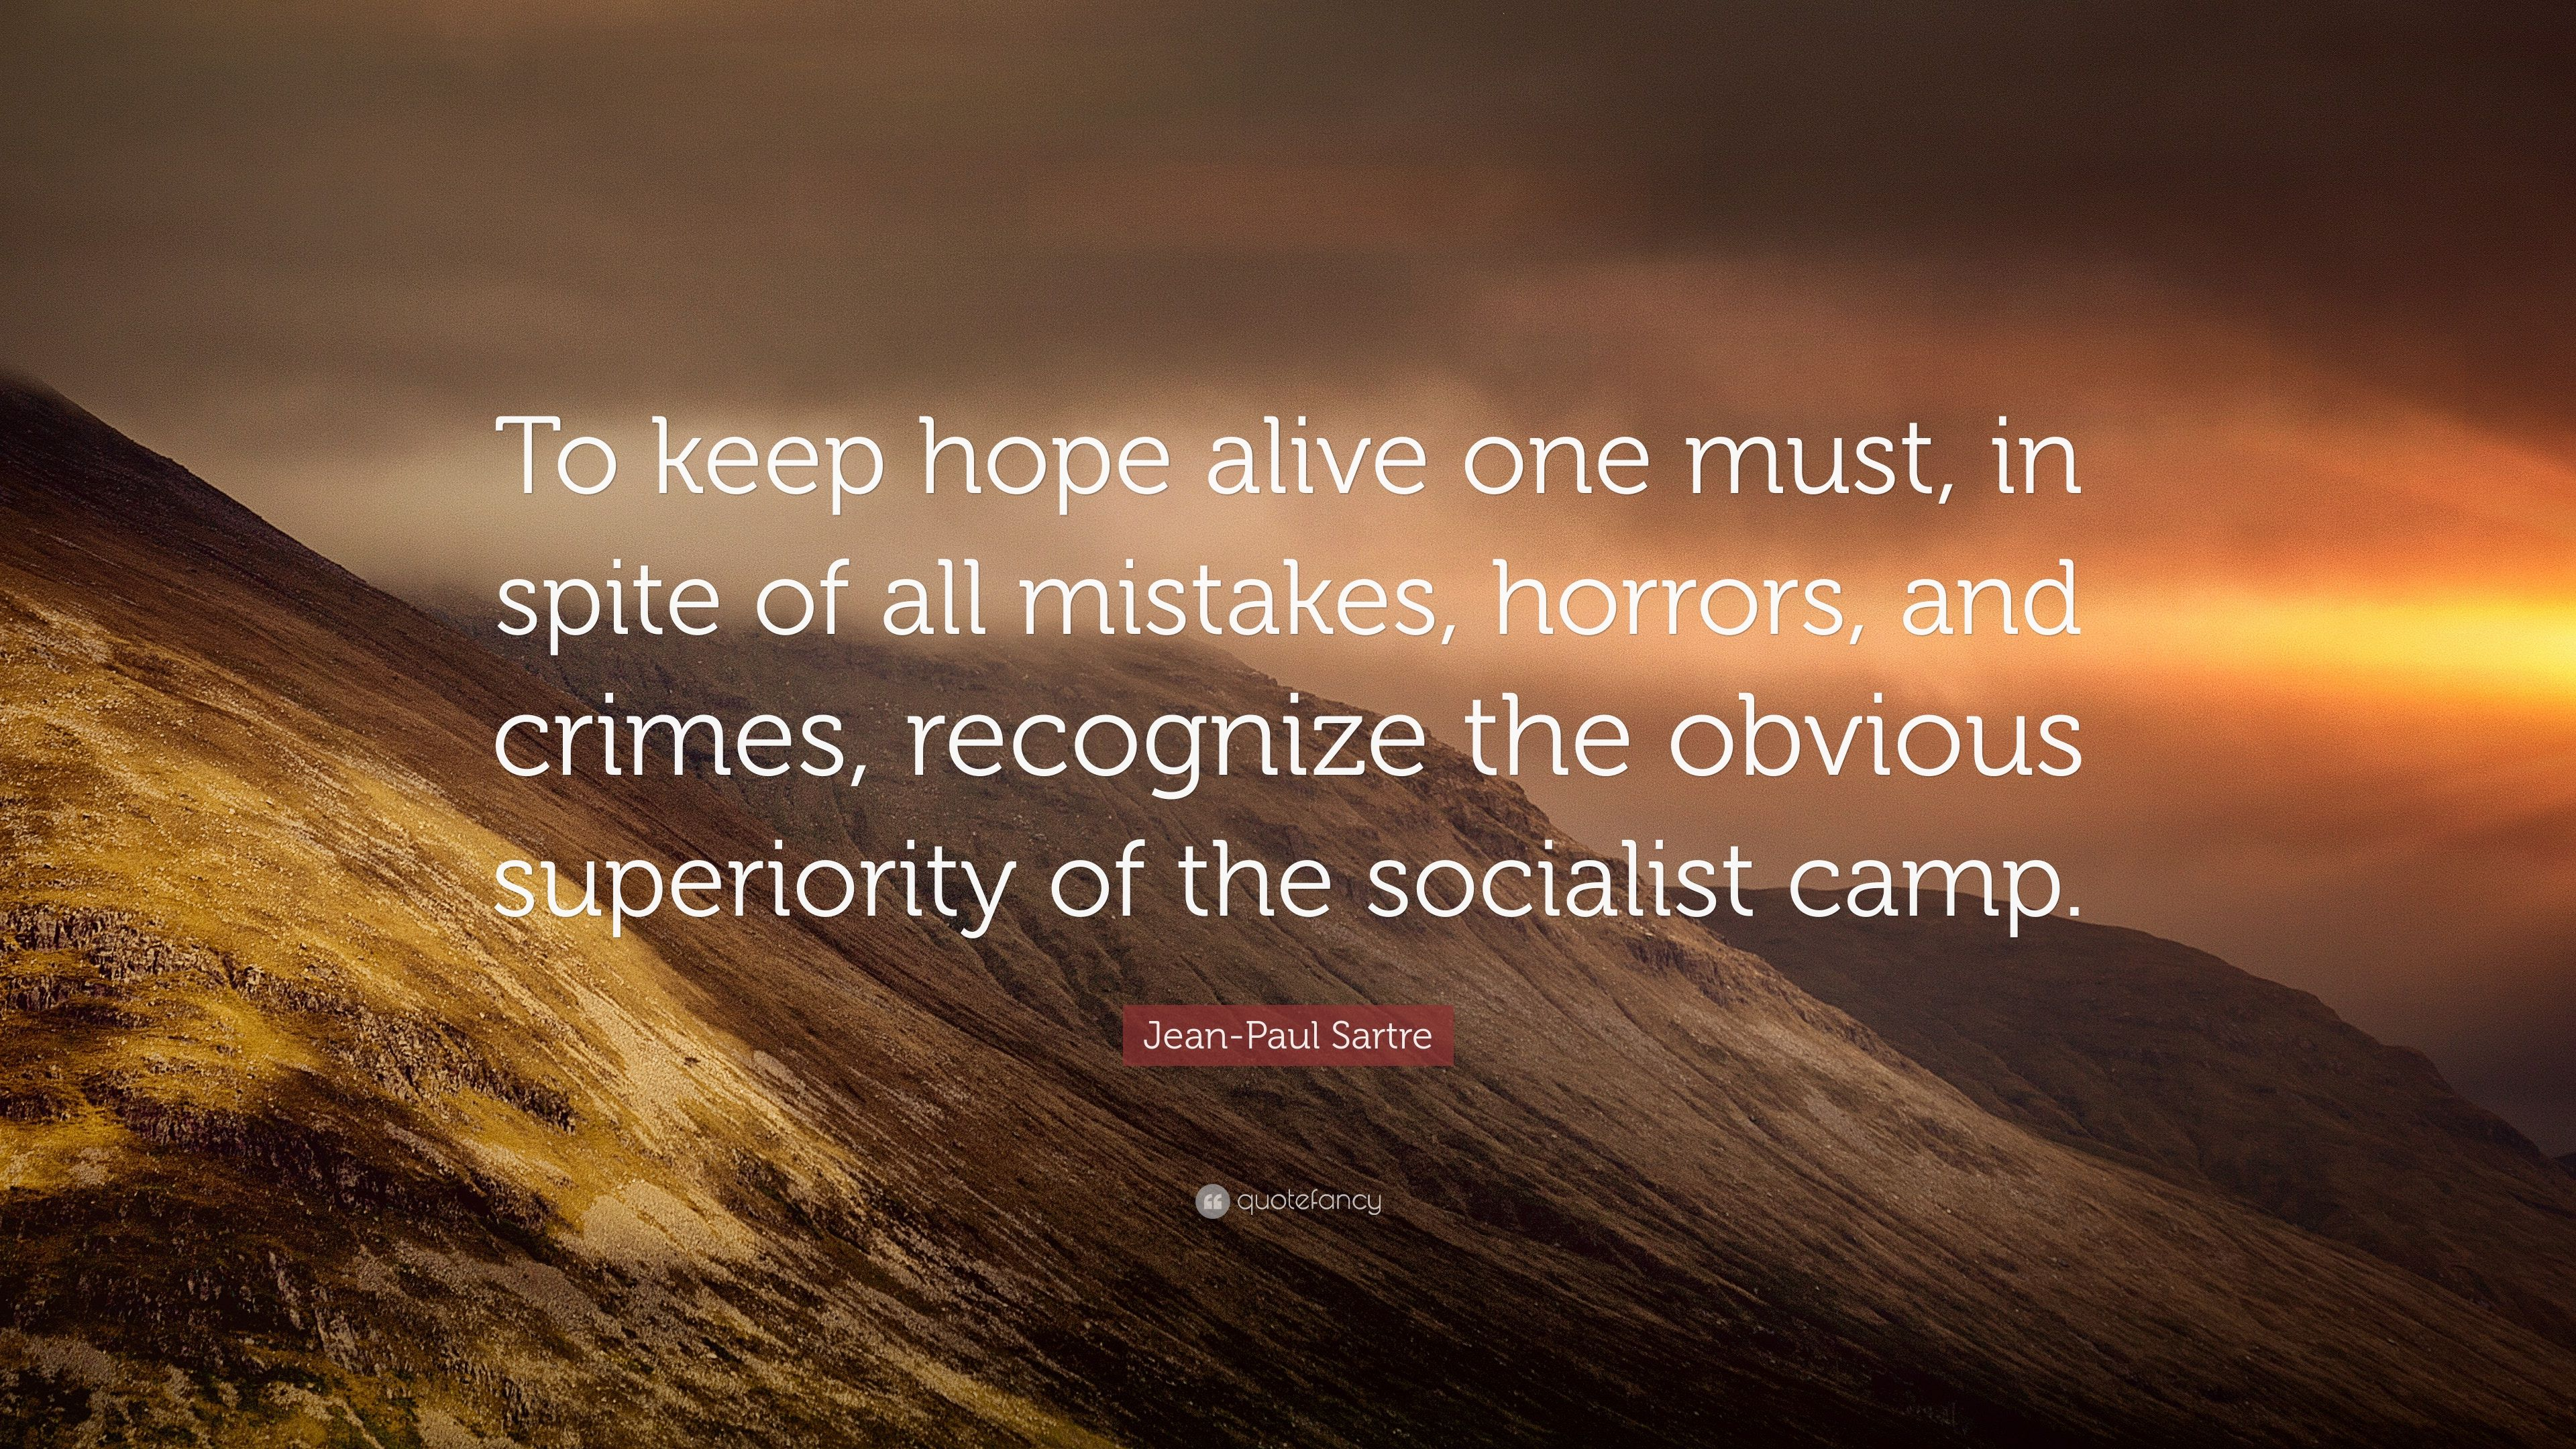 jean paul sartre quote to keep hope alive one must in spite